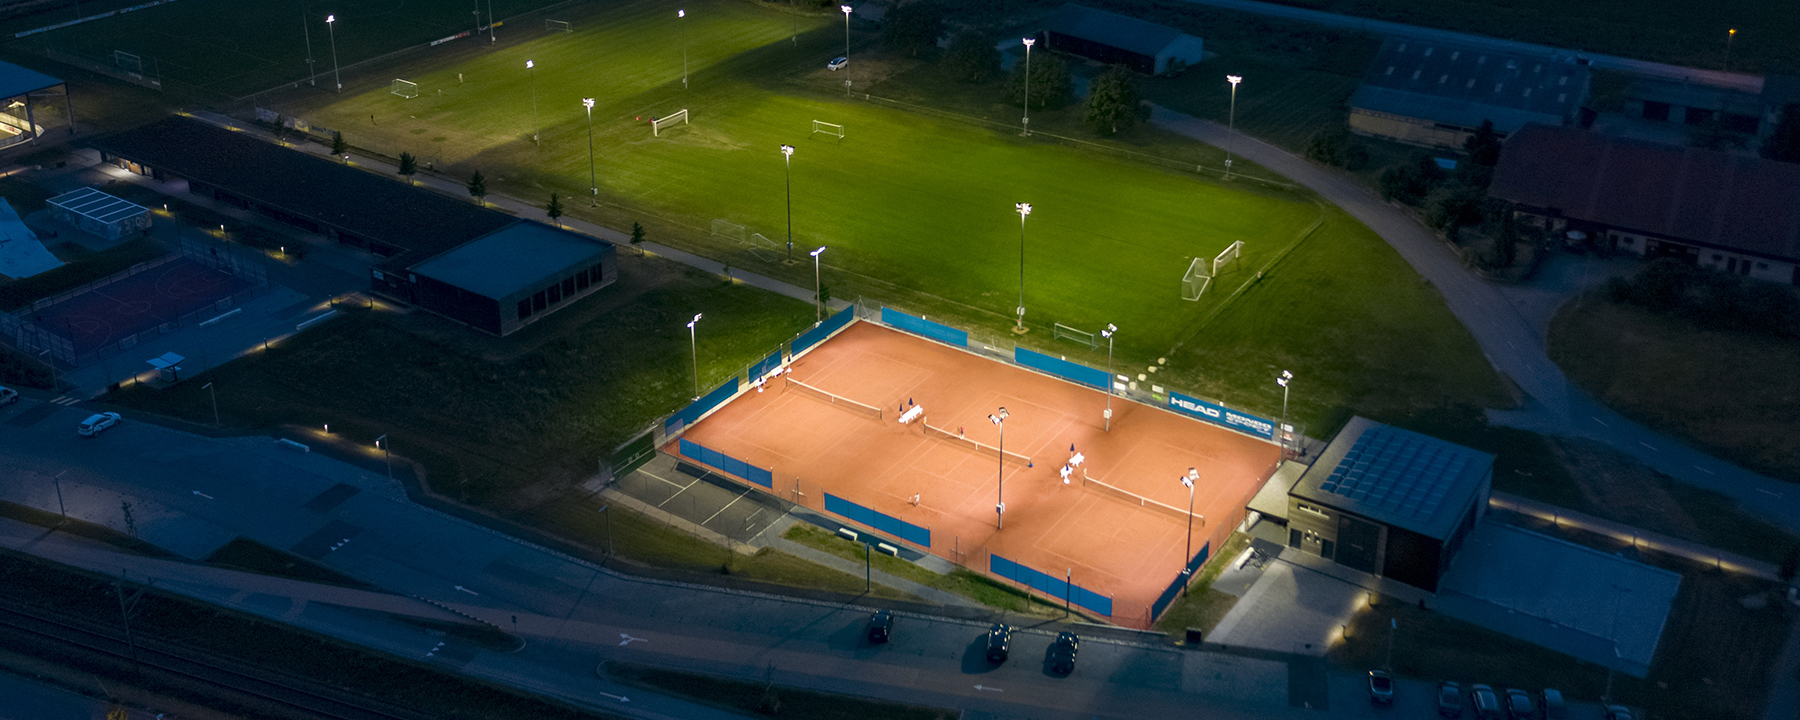 Schréder sports lighting solutions that reduce energy costs and light spill